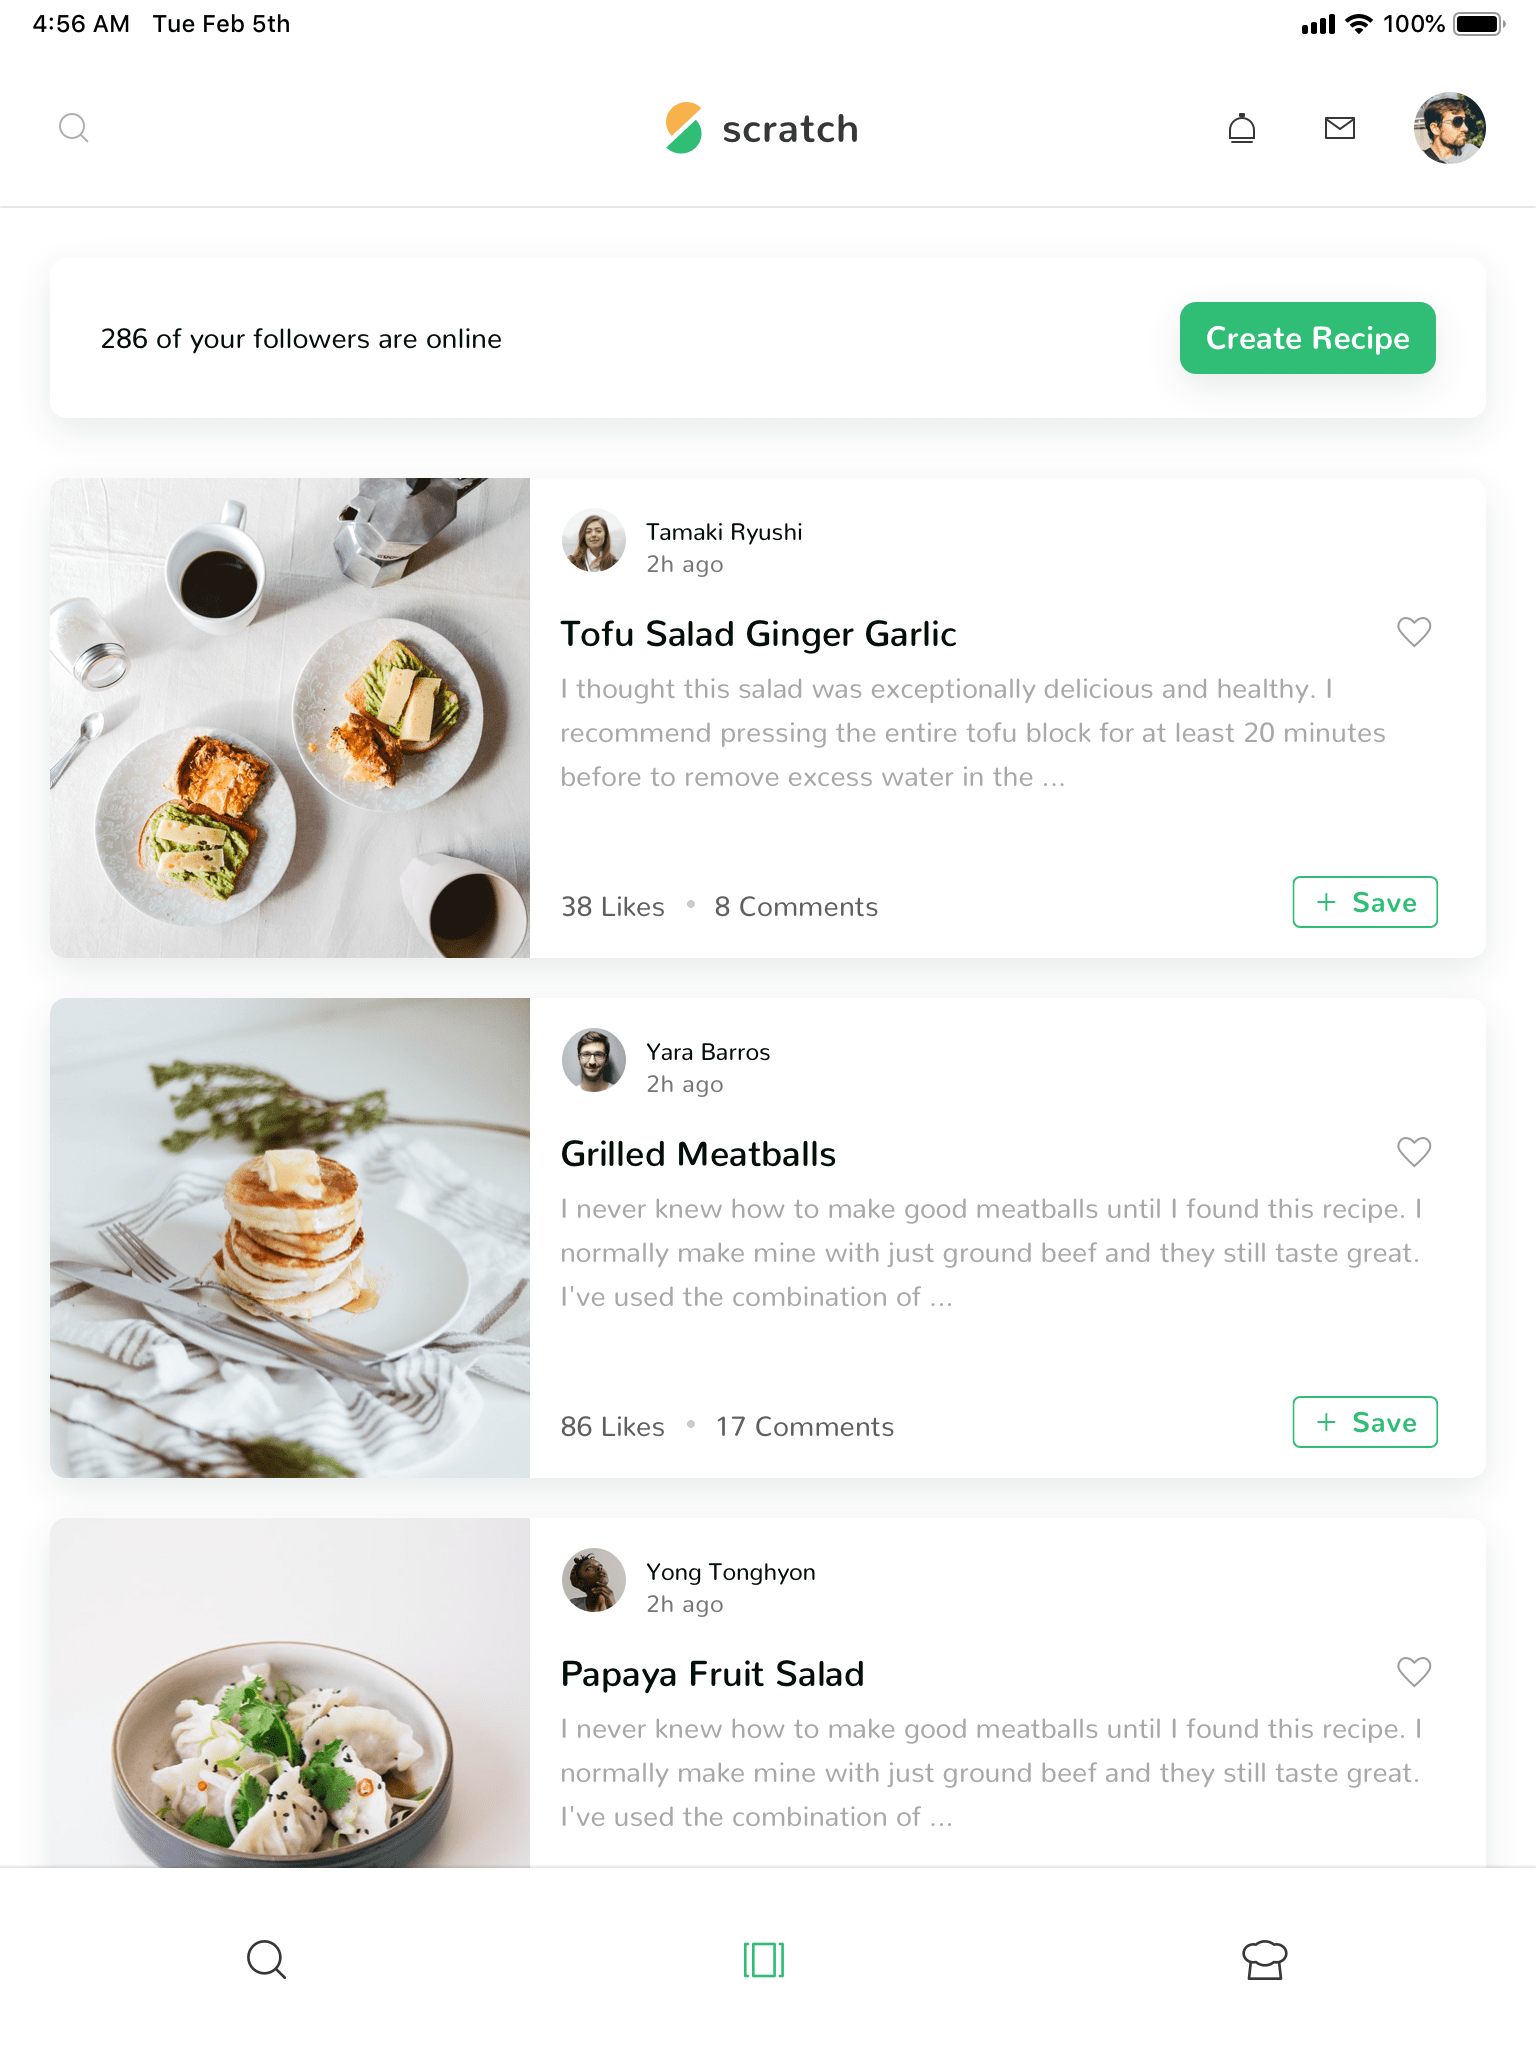 Scratch—A UI Kit to nourish your creativity by InVision | Inside